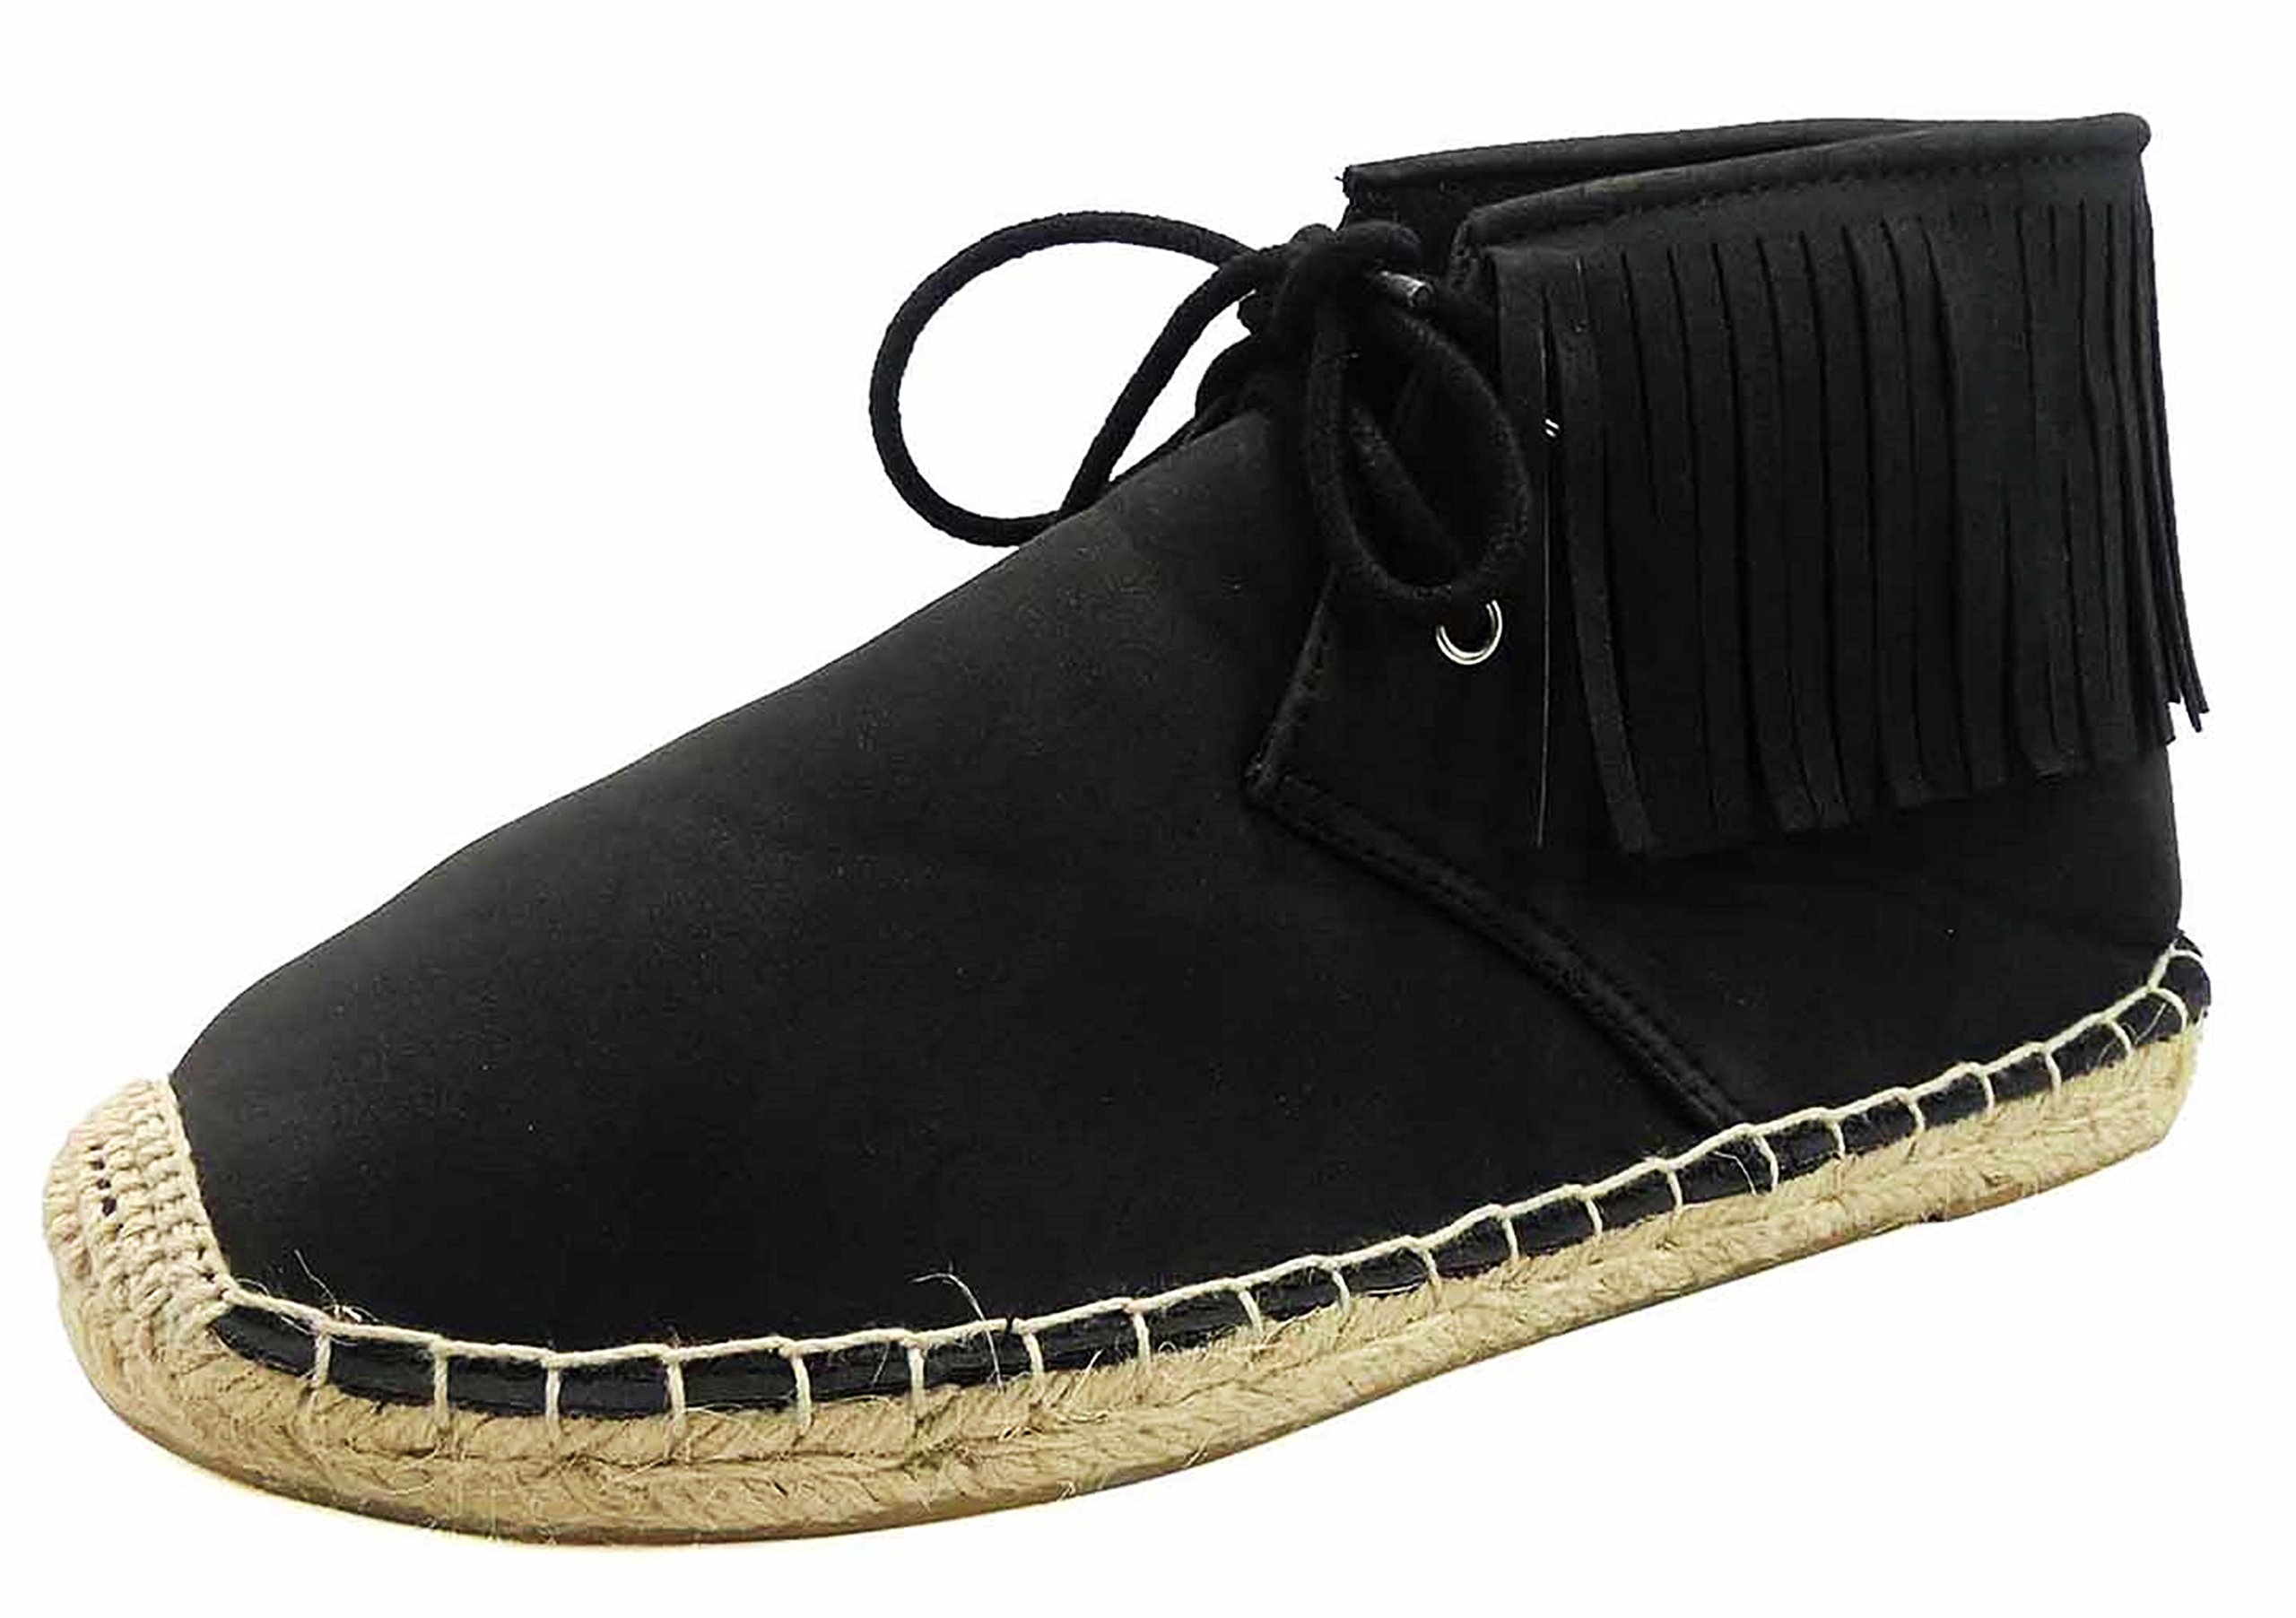 Top Charlie Black Cute Booties for Women New Fun Back to School Uniform 2018 Round Toe Fringe Espedrille Beach Vegan Suede Non Skid Casual Comfy Short Cowboy Boot Shoe Ladies Teen Girl (Size 9, Black)